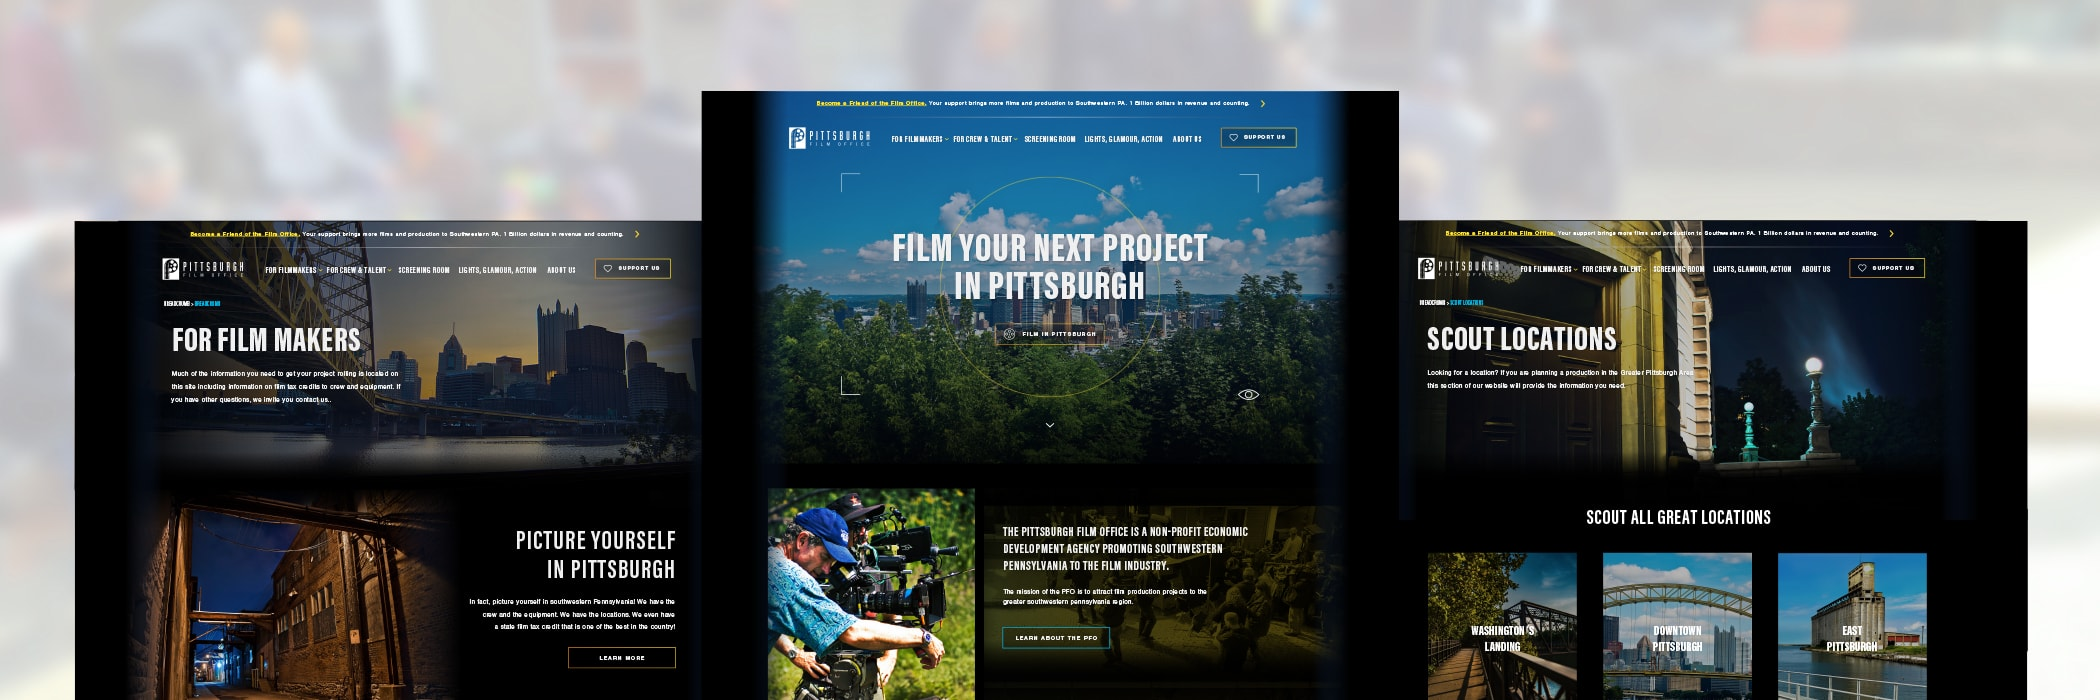 Pittsburgh Film Office Brand Website